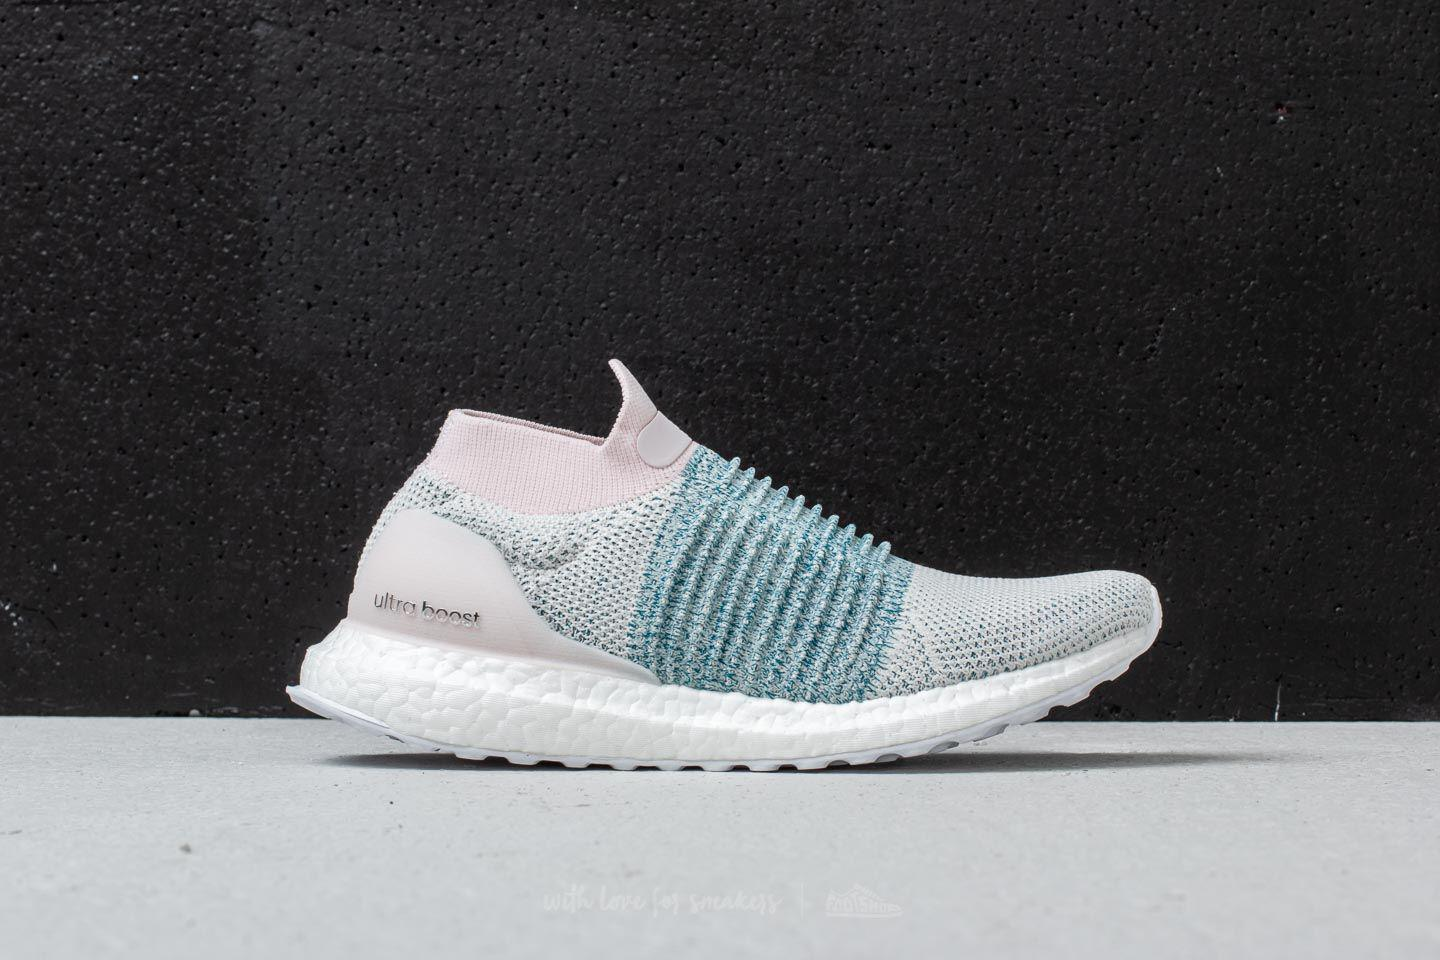 Lyst - Footshop Adidas Ultraboost Laceless W Orchid Tint  Ftwr White ... 25e70fafc